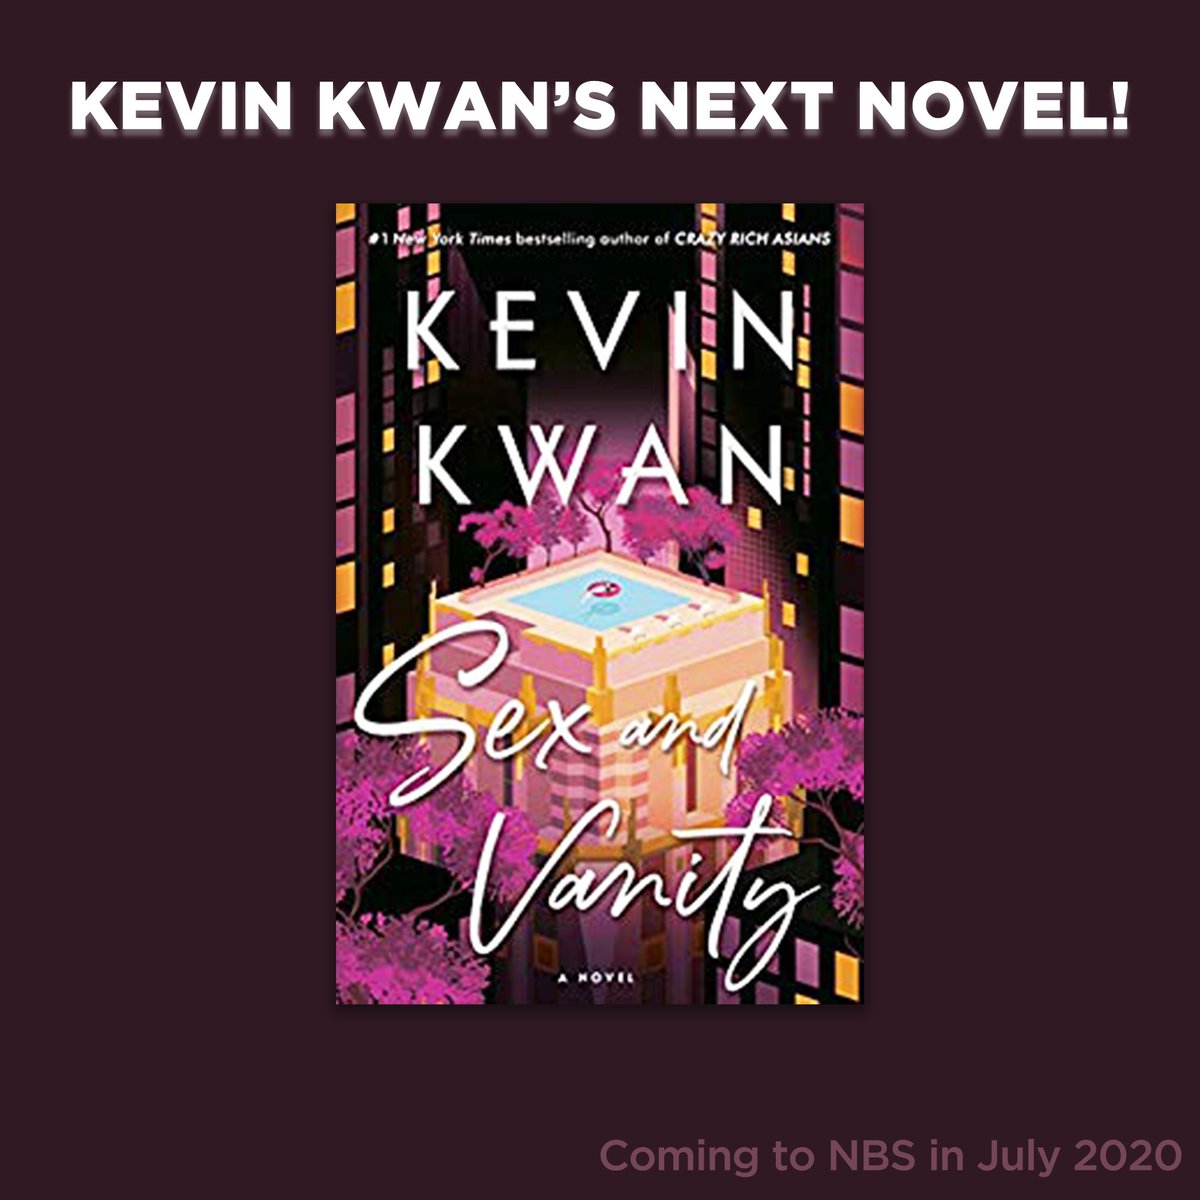 Stay tuned for Sex and Vanity, the new novel by 'Crazy Rich Asians' author Kevin Kwan! It's coming to NBS in July 2020. #NBSNewReads #NBSfinds #NBSeveryday